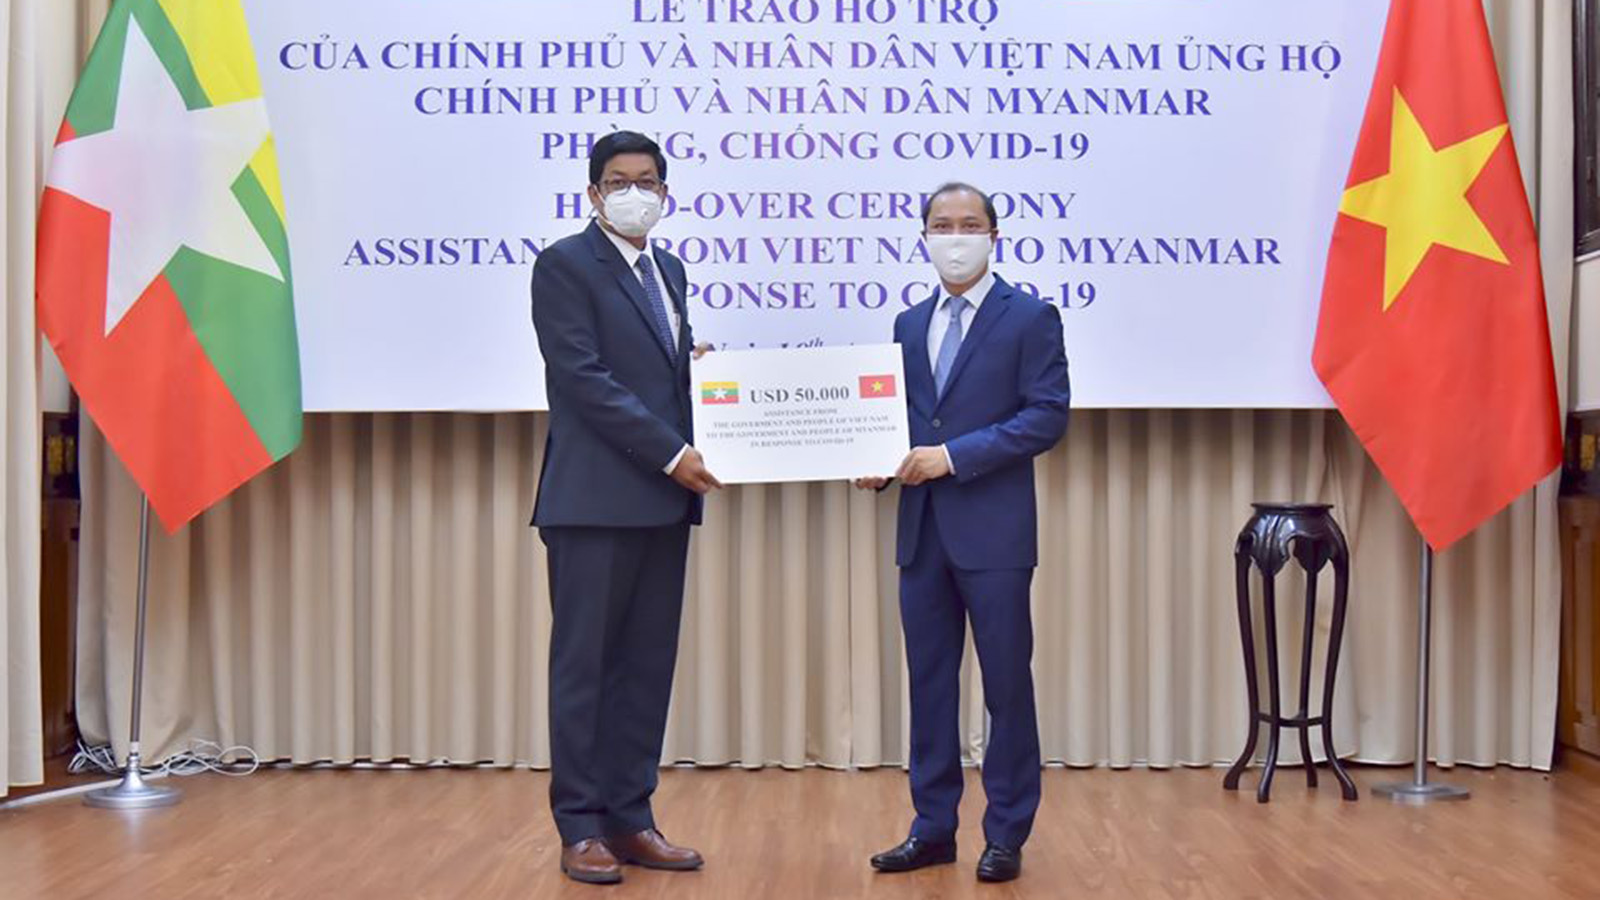 Myanmar Ambassador U Kyaw Soe Win receives the cash donation presented by Vietnamese Deputy Foreign Minister Mr Nguyen Quoc Dung in Hanoi yesterday. Photo: MOFA